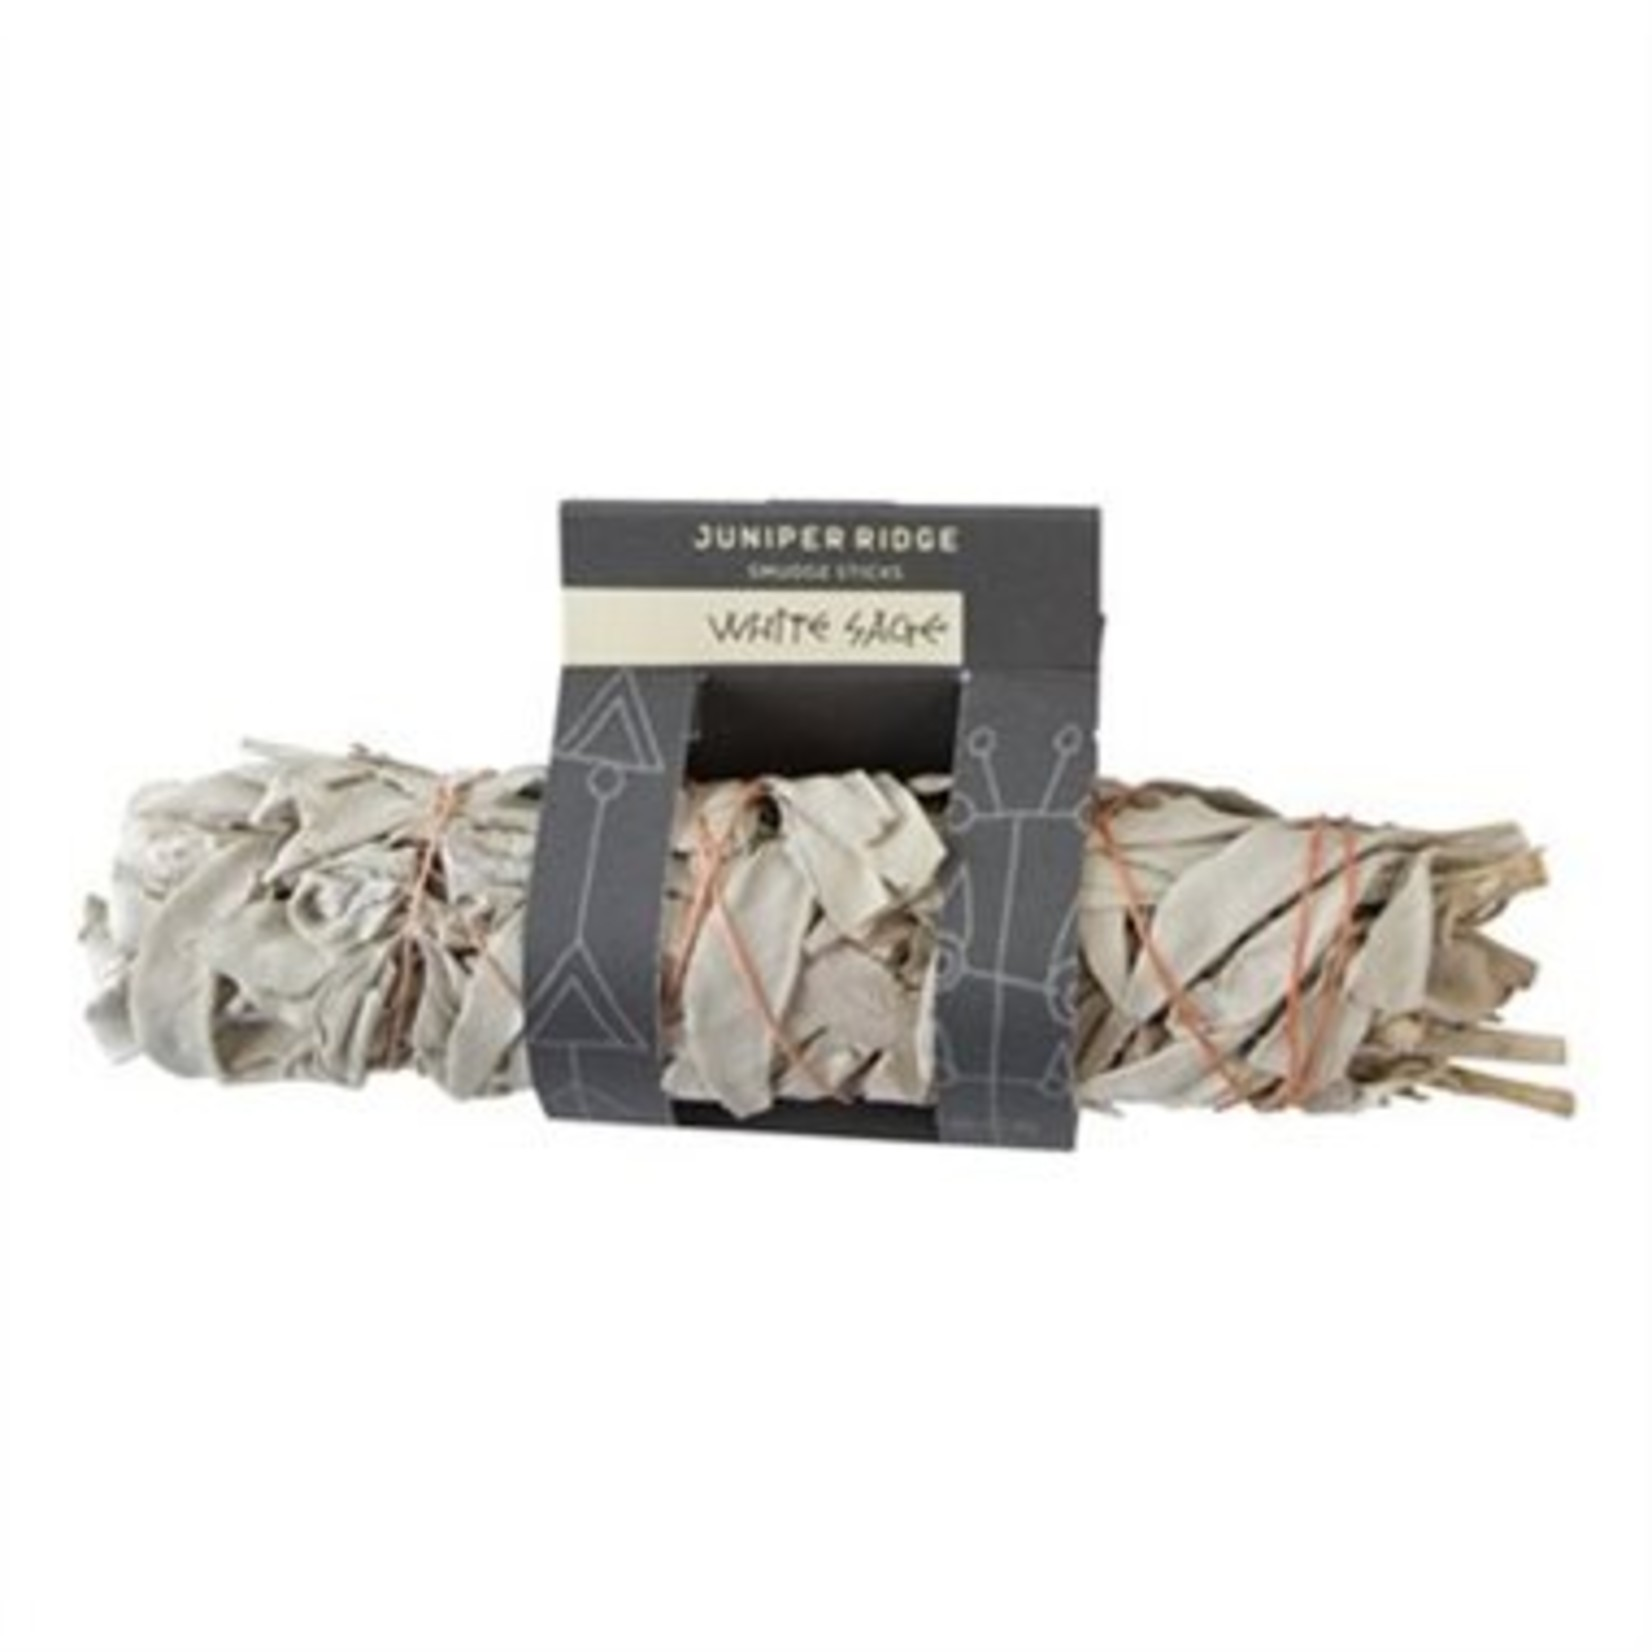 Juniper Ridge Juniper Ridge White Sage Smudge Stick Large